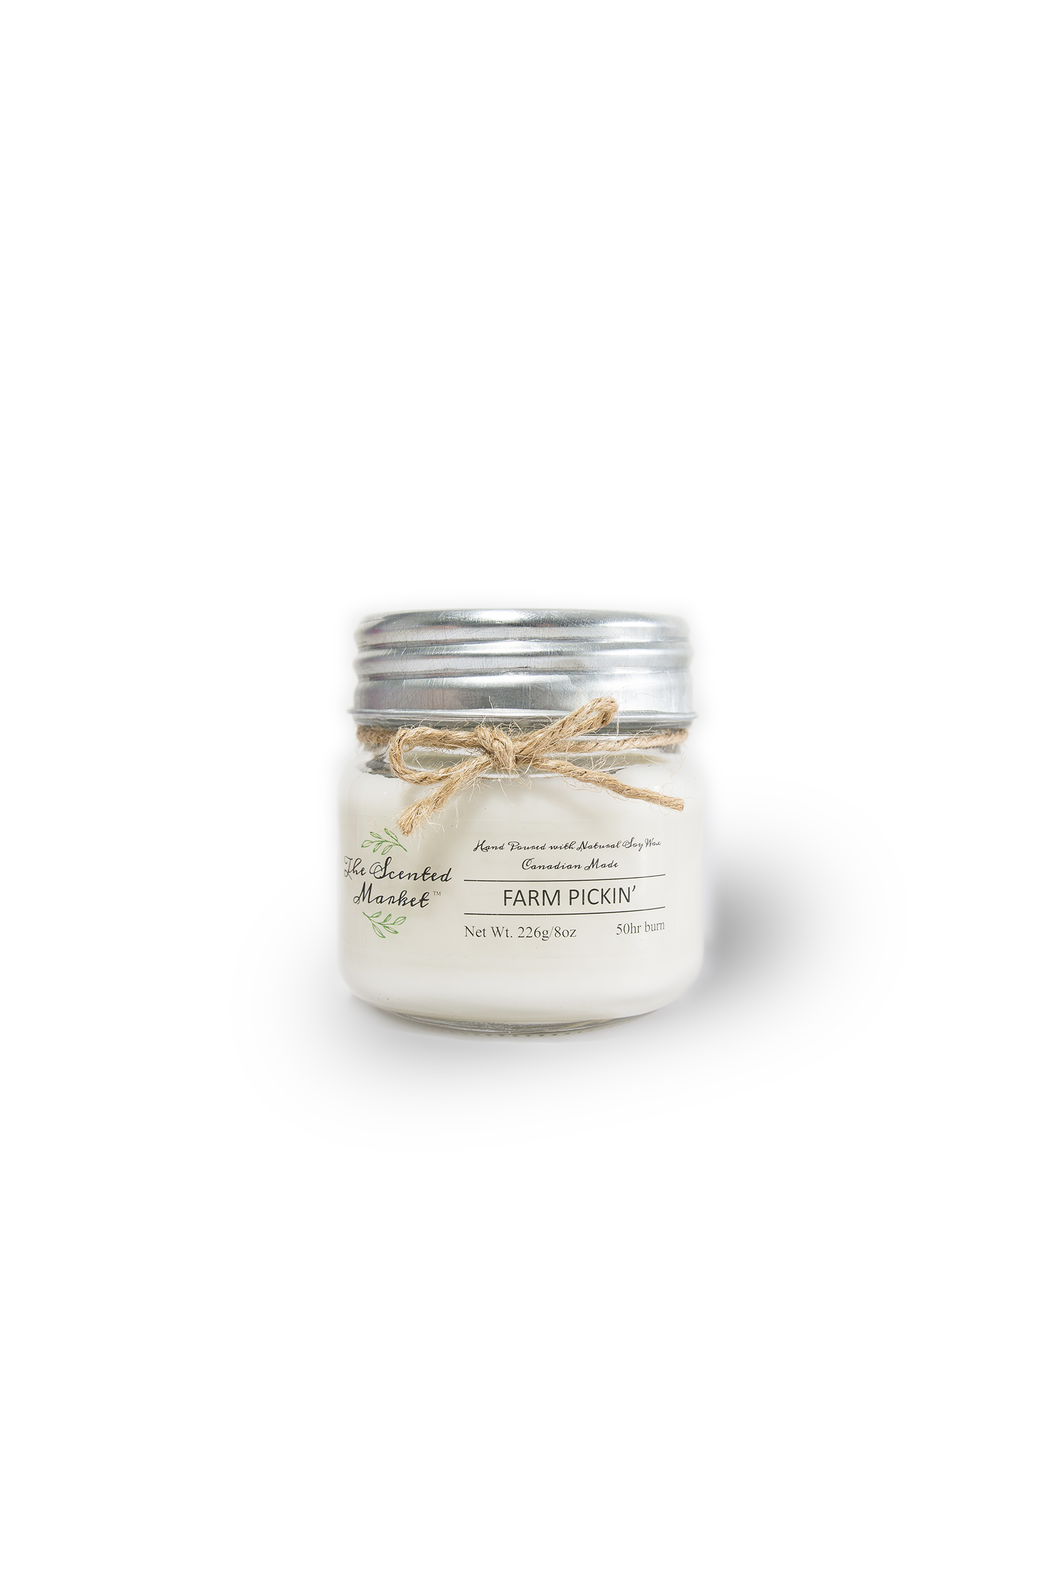 FARM PICKIN' SOY WAX CANDLE 8oz